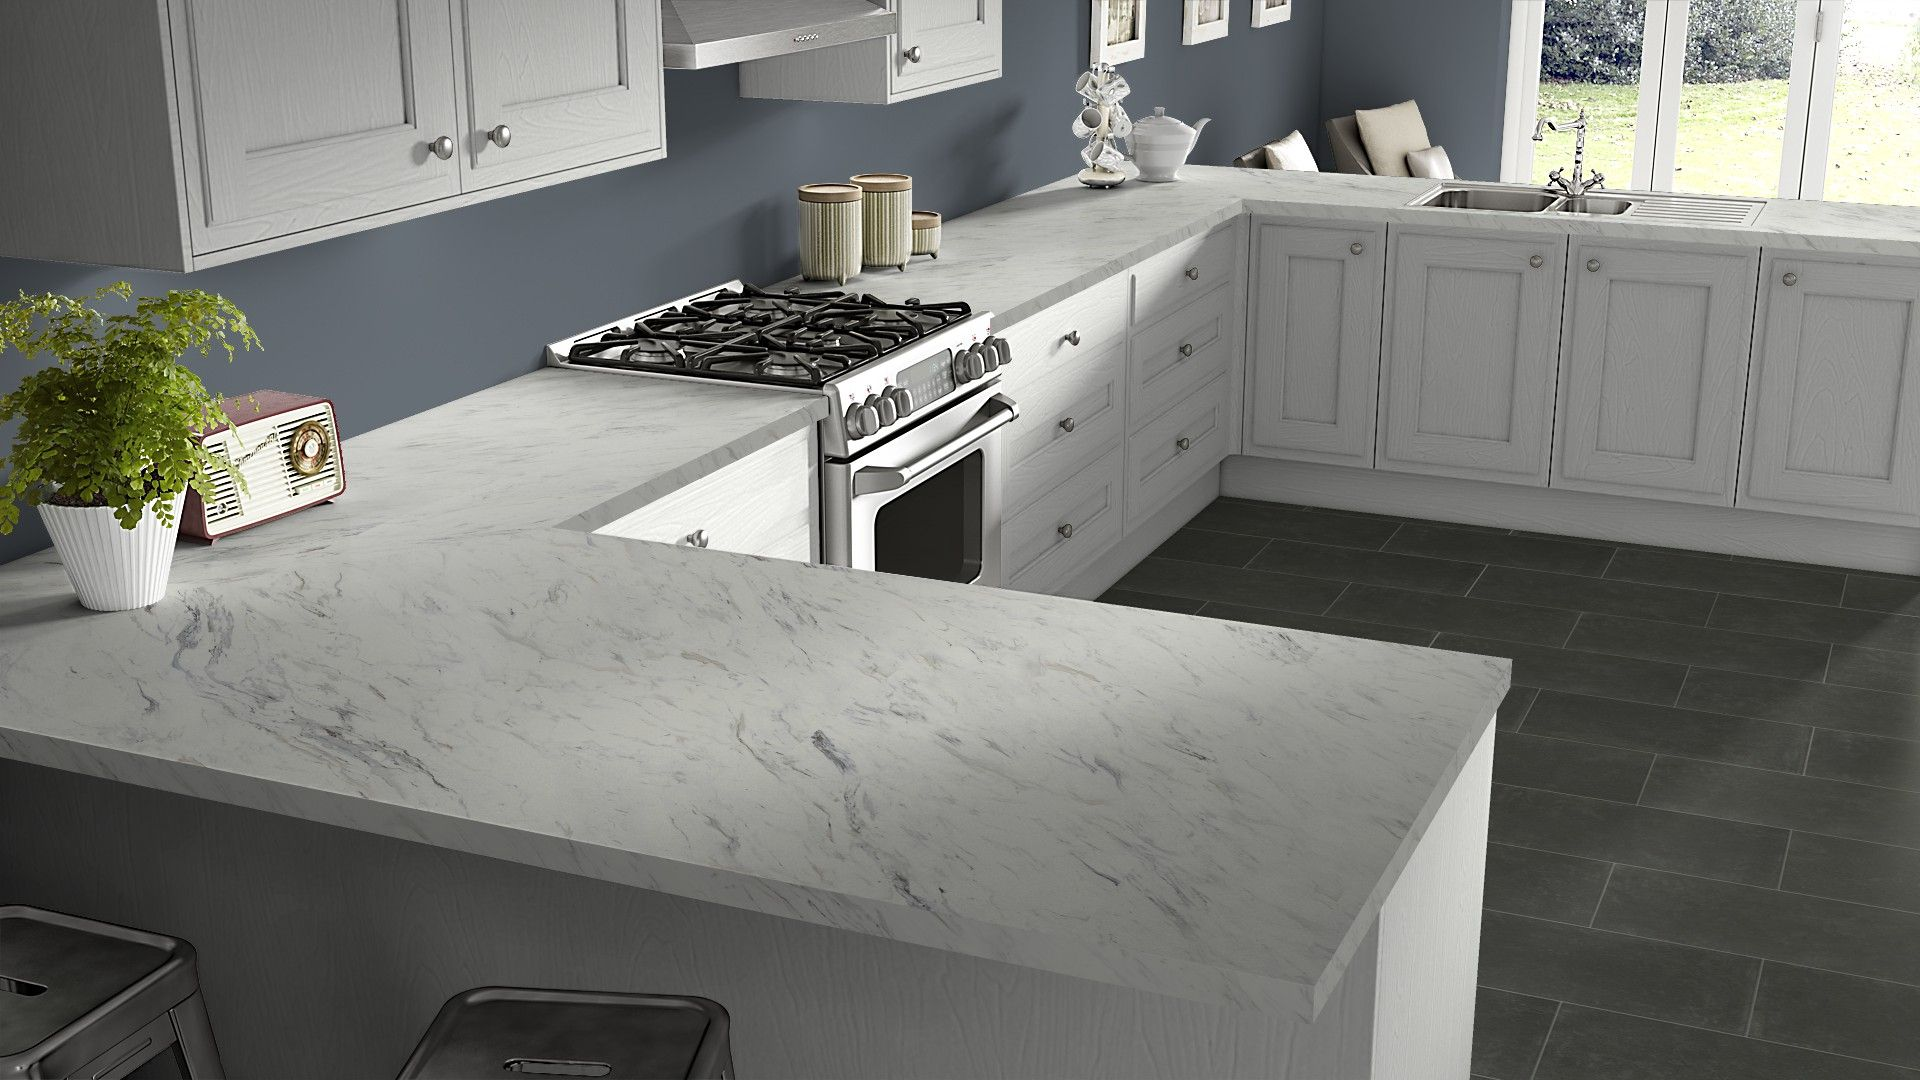 Calcutta Marble Laminate Get Inspired For Your Kitchen Renovation With Wilsonart 39 S Free